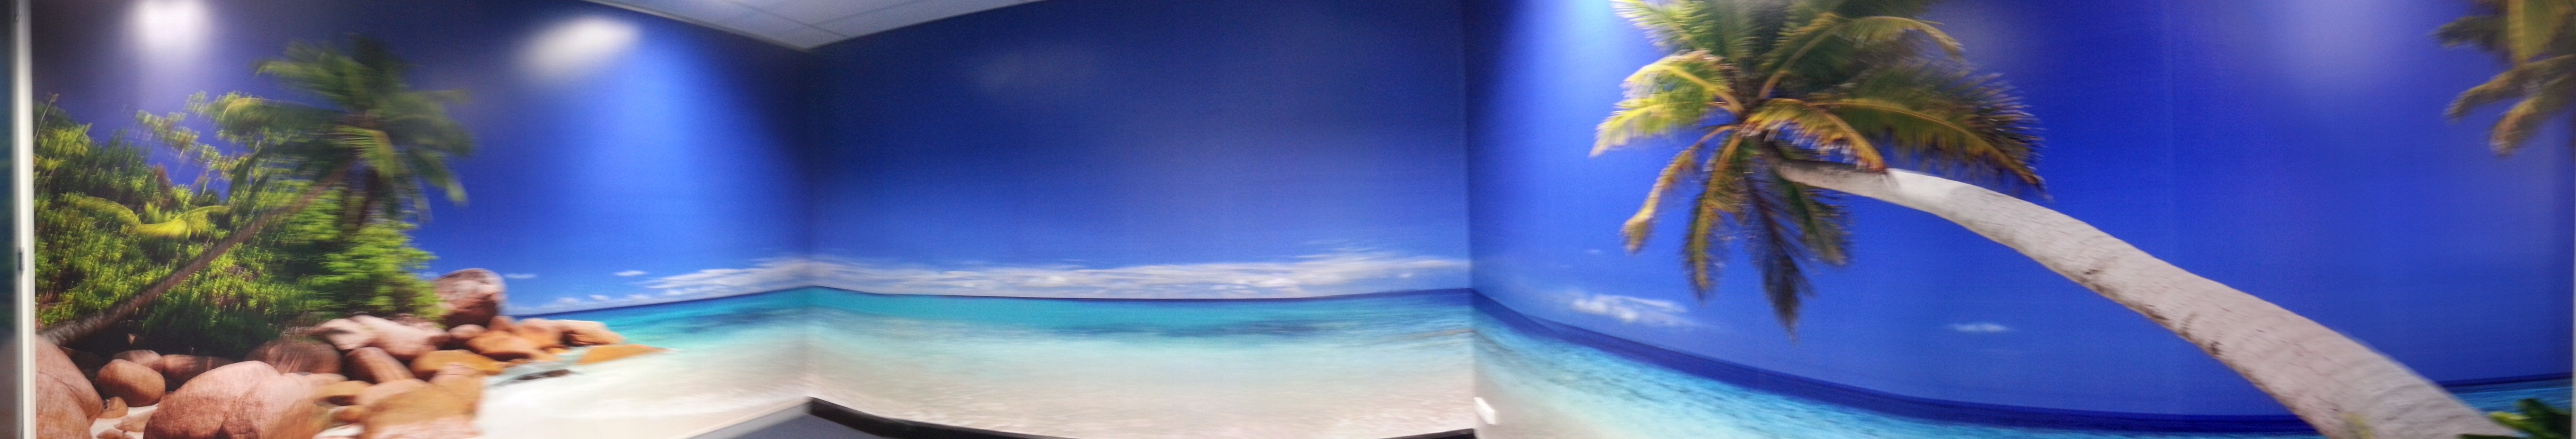 Beach-Wall-Mural-Installation-by-Sydney-ing-wallpaper-wp5005099